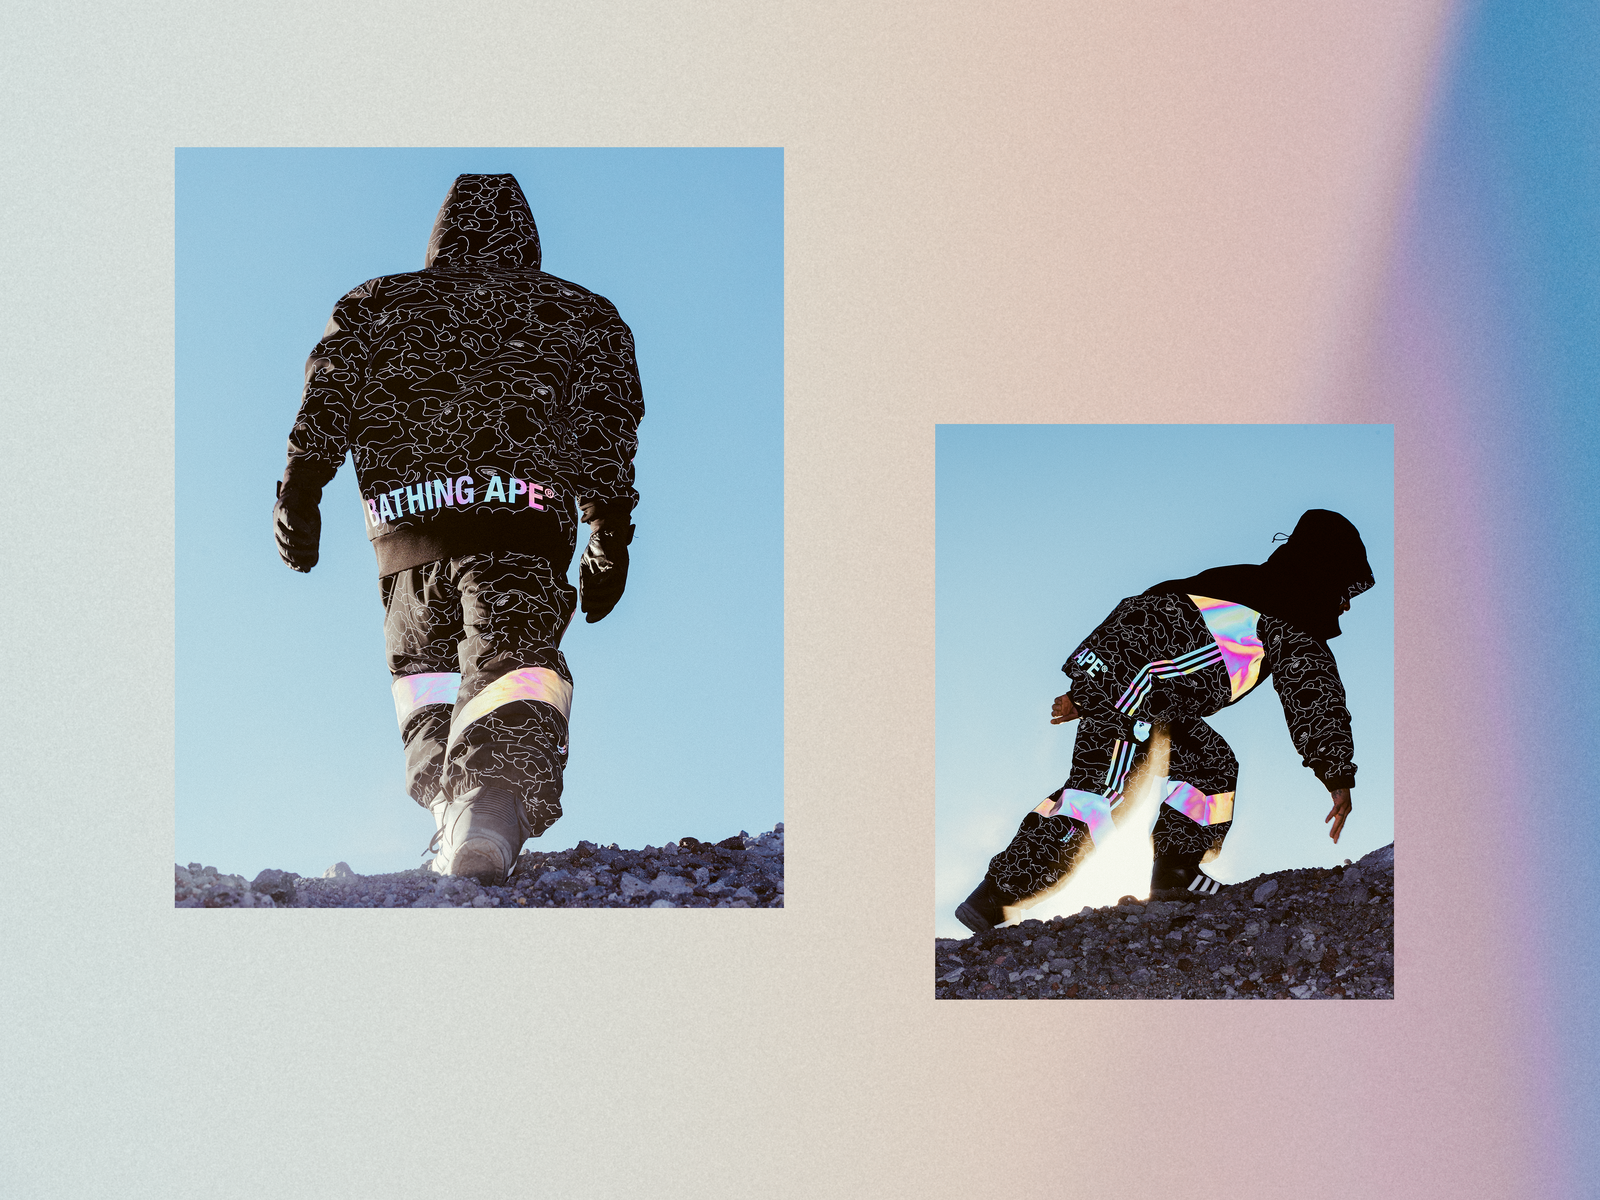 adidas And BAPE Hit The Slopes For Their Latest Collab